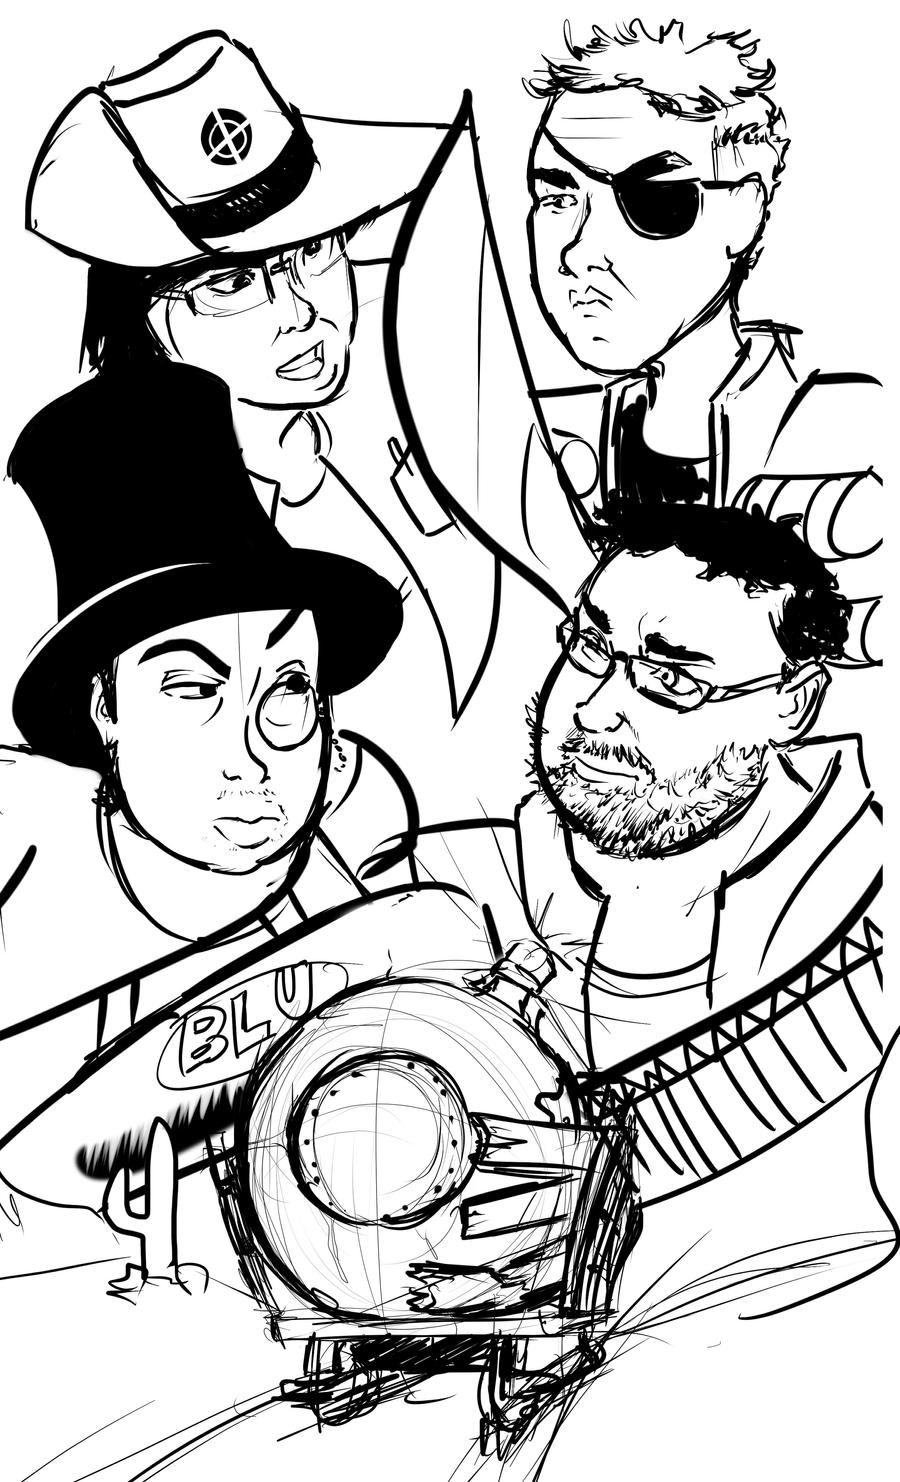 quick sketch of simon and lewis  and friends